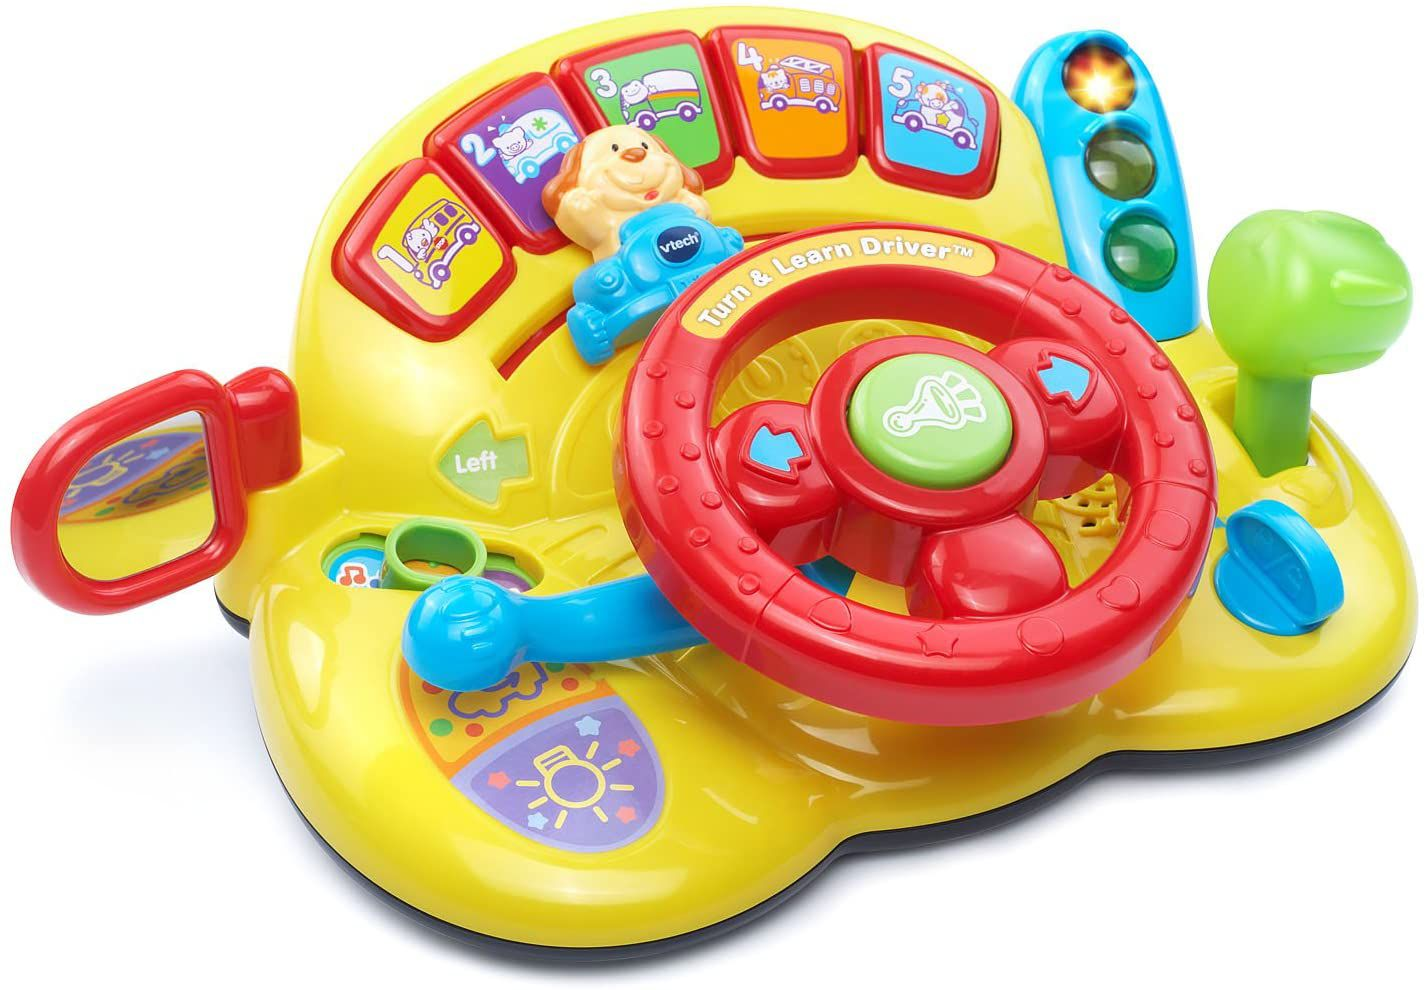 VTech turn and learn